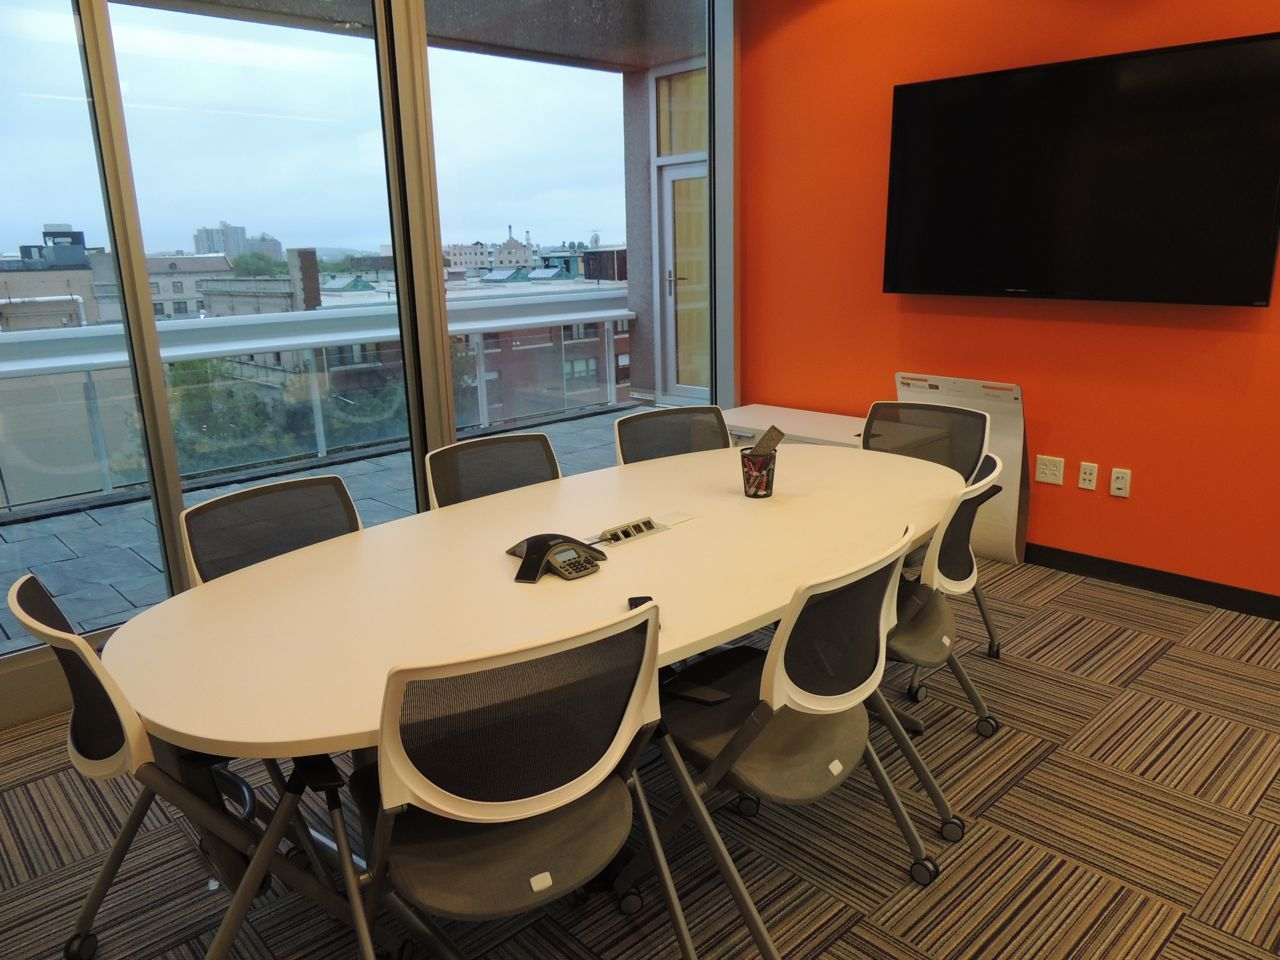 Meeting Room For Up To 10 People Home Home Decor Conference Venue